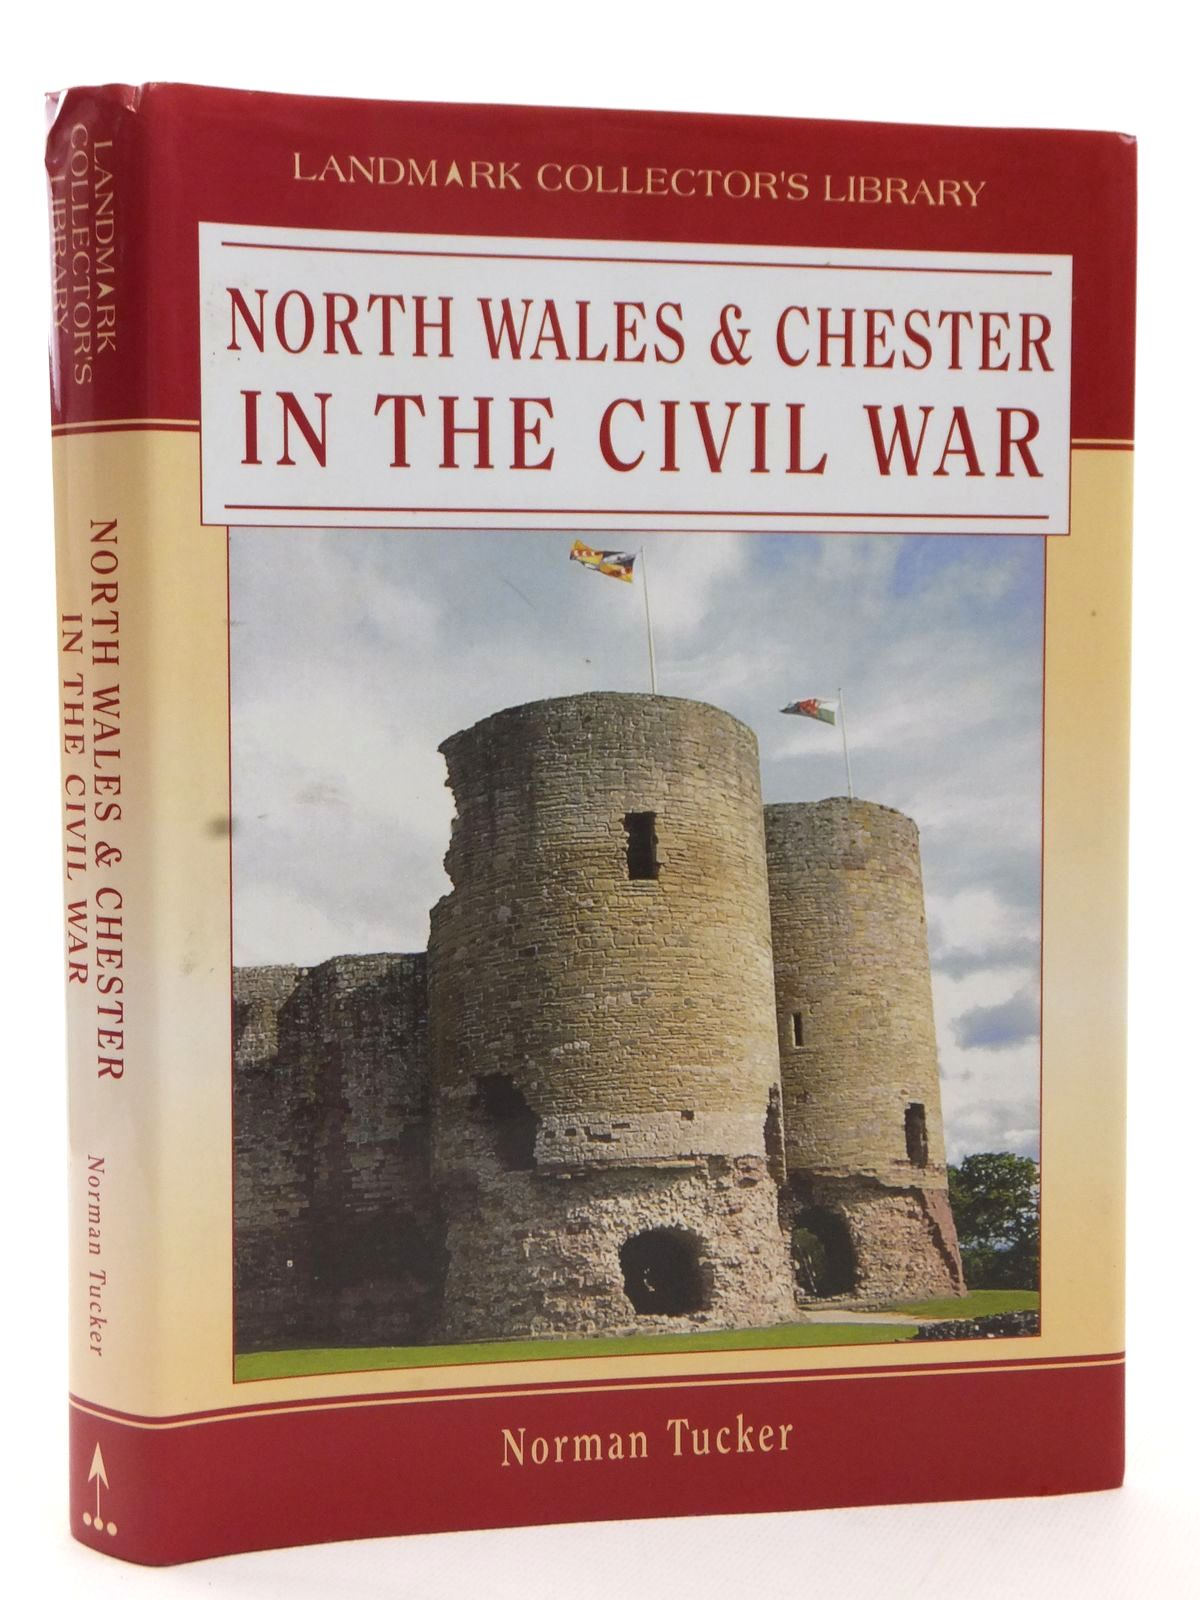 Photo of NORTH WALES & CHESTER IN THE CIVIL WAR written by Tucker, Norman published by Landmark Publishing (STOCK CODE: 1608978)  for sale by Stella & Rose's Books